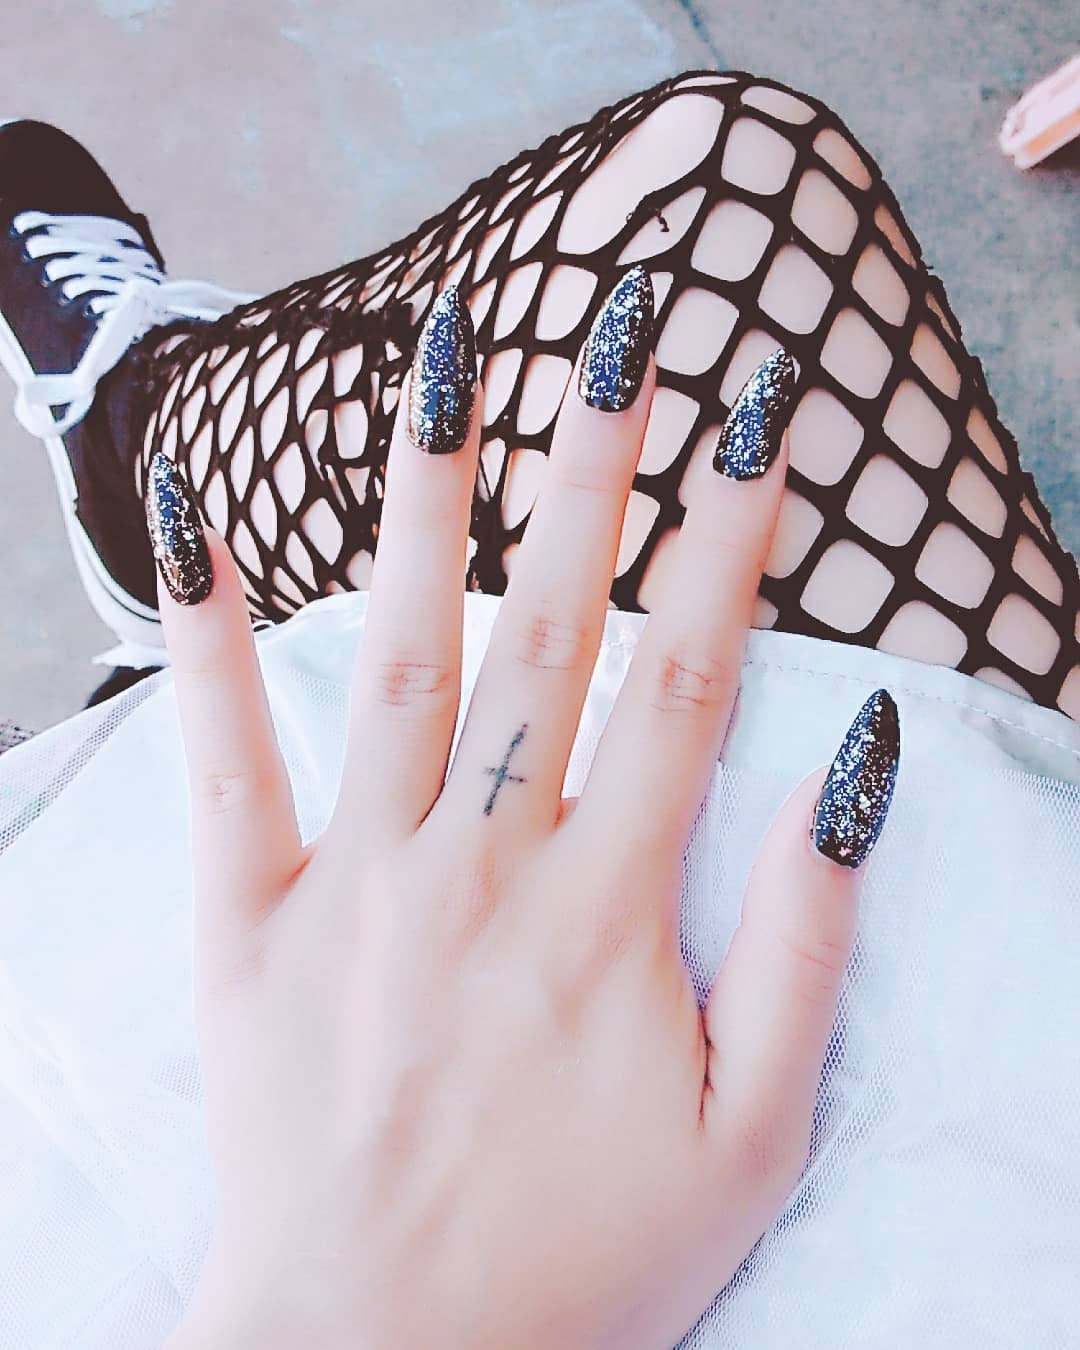 "<img src=""//cdn.shopify.com/s/files/1/2375/3611/files/black_stiletto_nails1.jpg?v=1538229033"" alt=""Best Black Stiletto Nails Designs For Your Halloween; Black nails; black stiletto nails; black and white; stiletto nails; long nails; nails addict; nails magazine; gothic nails; Halloween nails"" />"